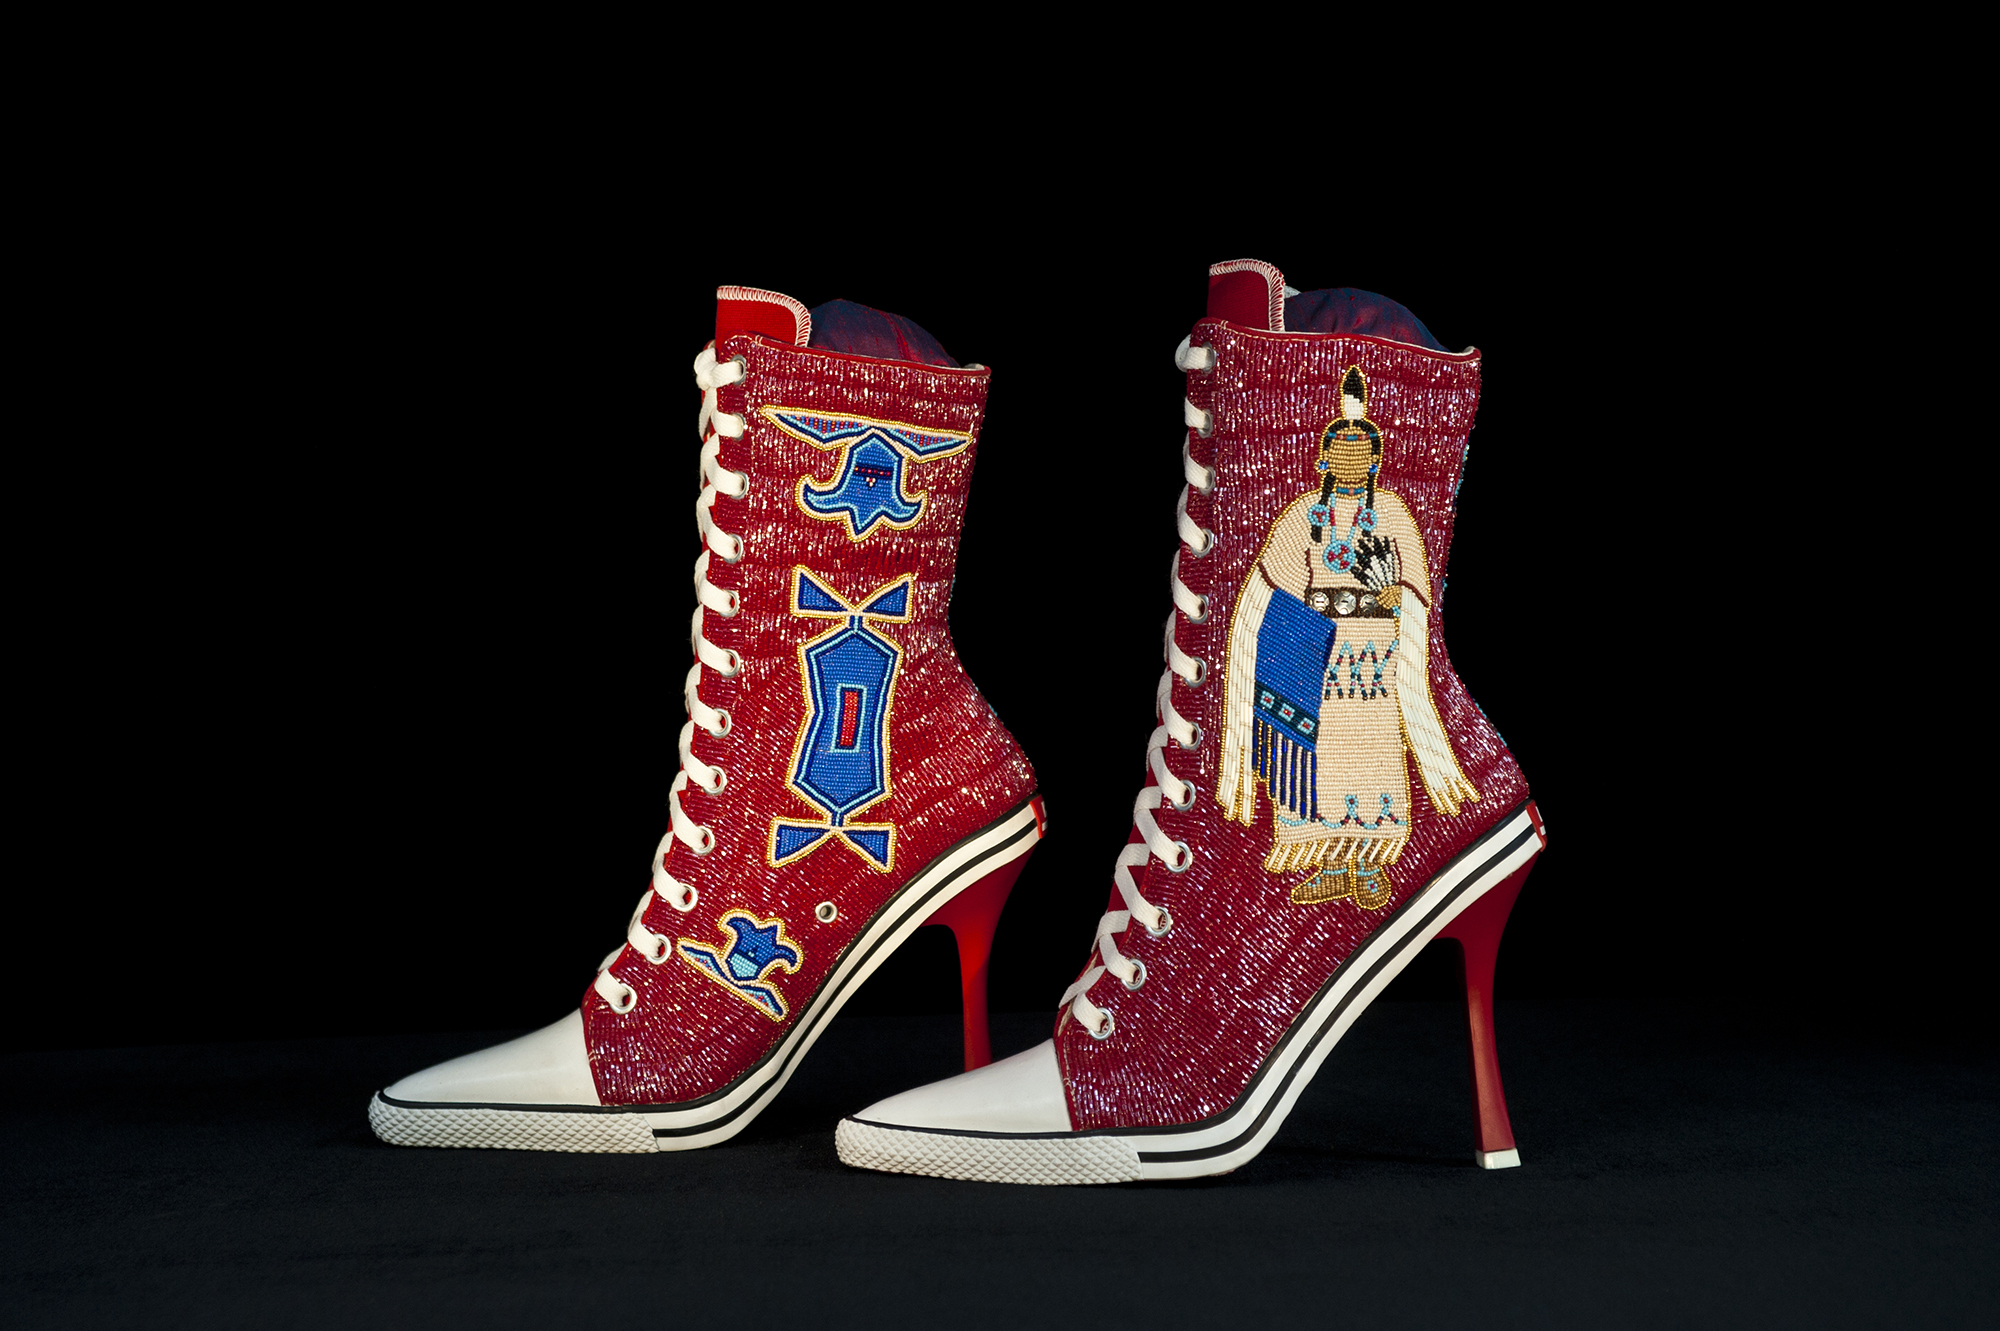 Kiowa By Design, beadwork and mixed media, 2014. Collection of Nerman Museum of Art. Photo credit: Stephen Lang